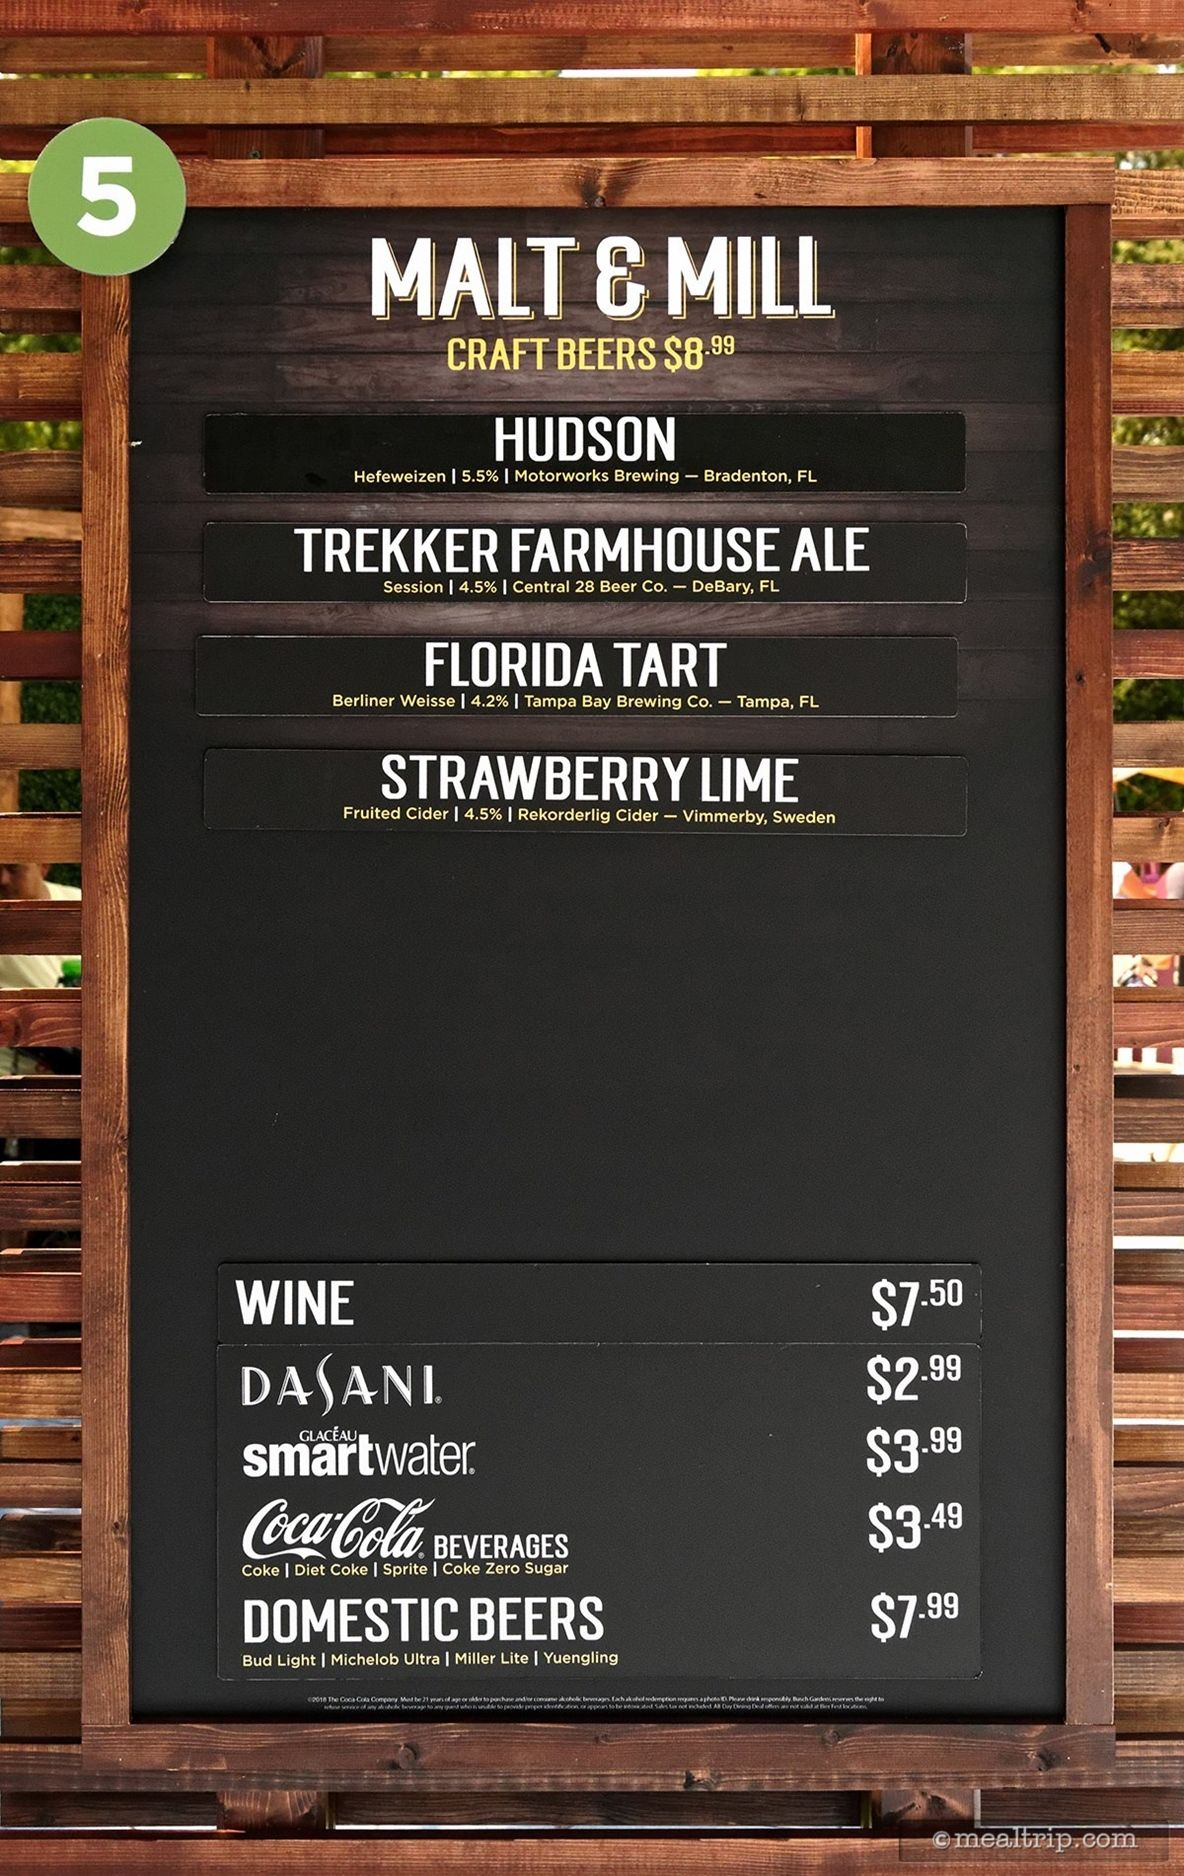 The Malt & Mill menu and price board for Bier Fest 2018 at